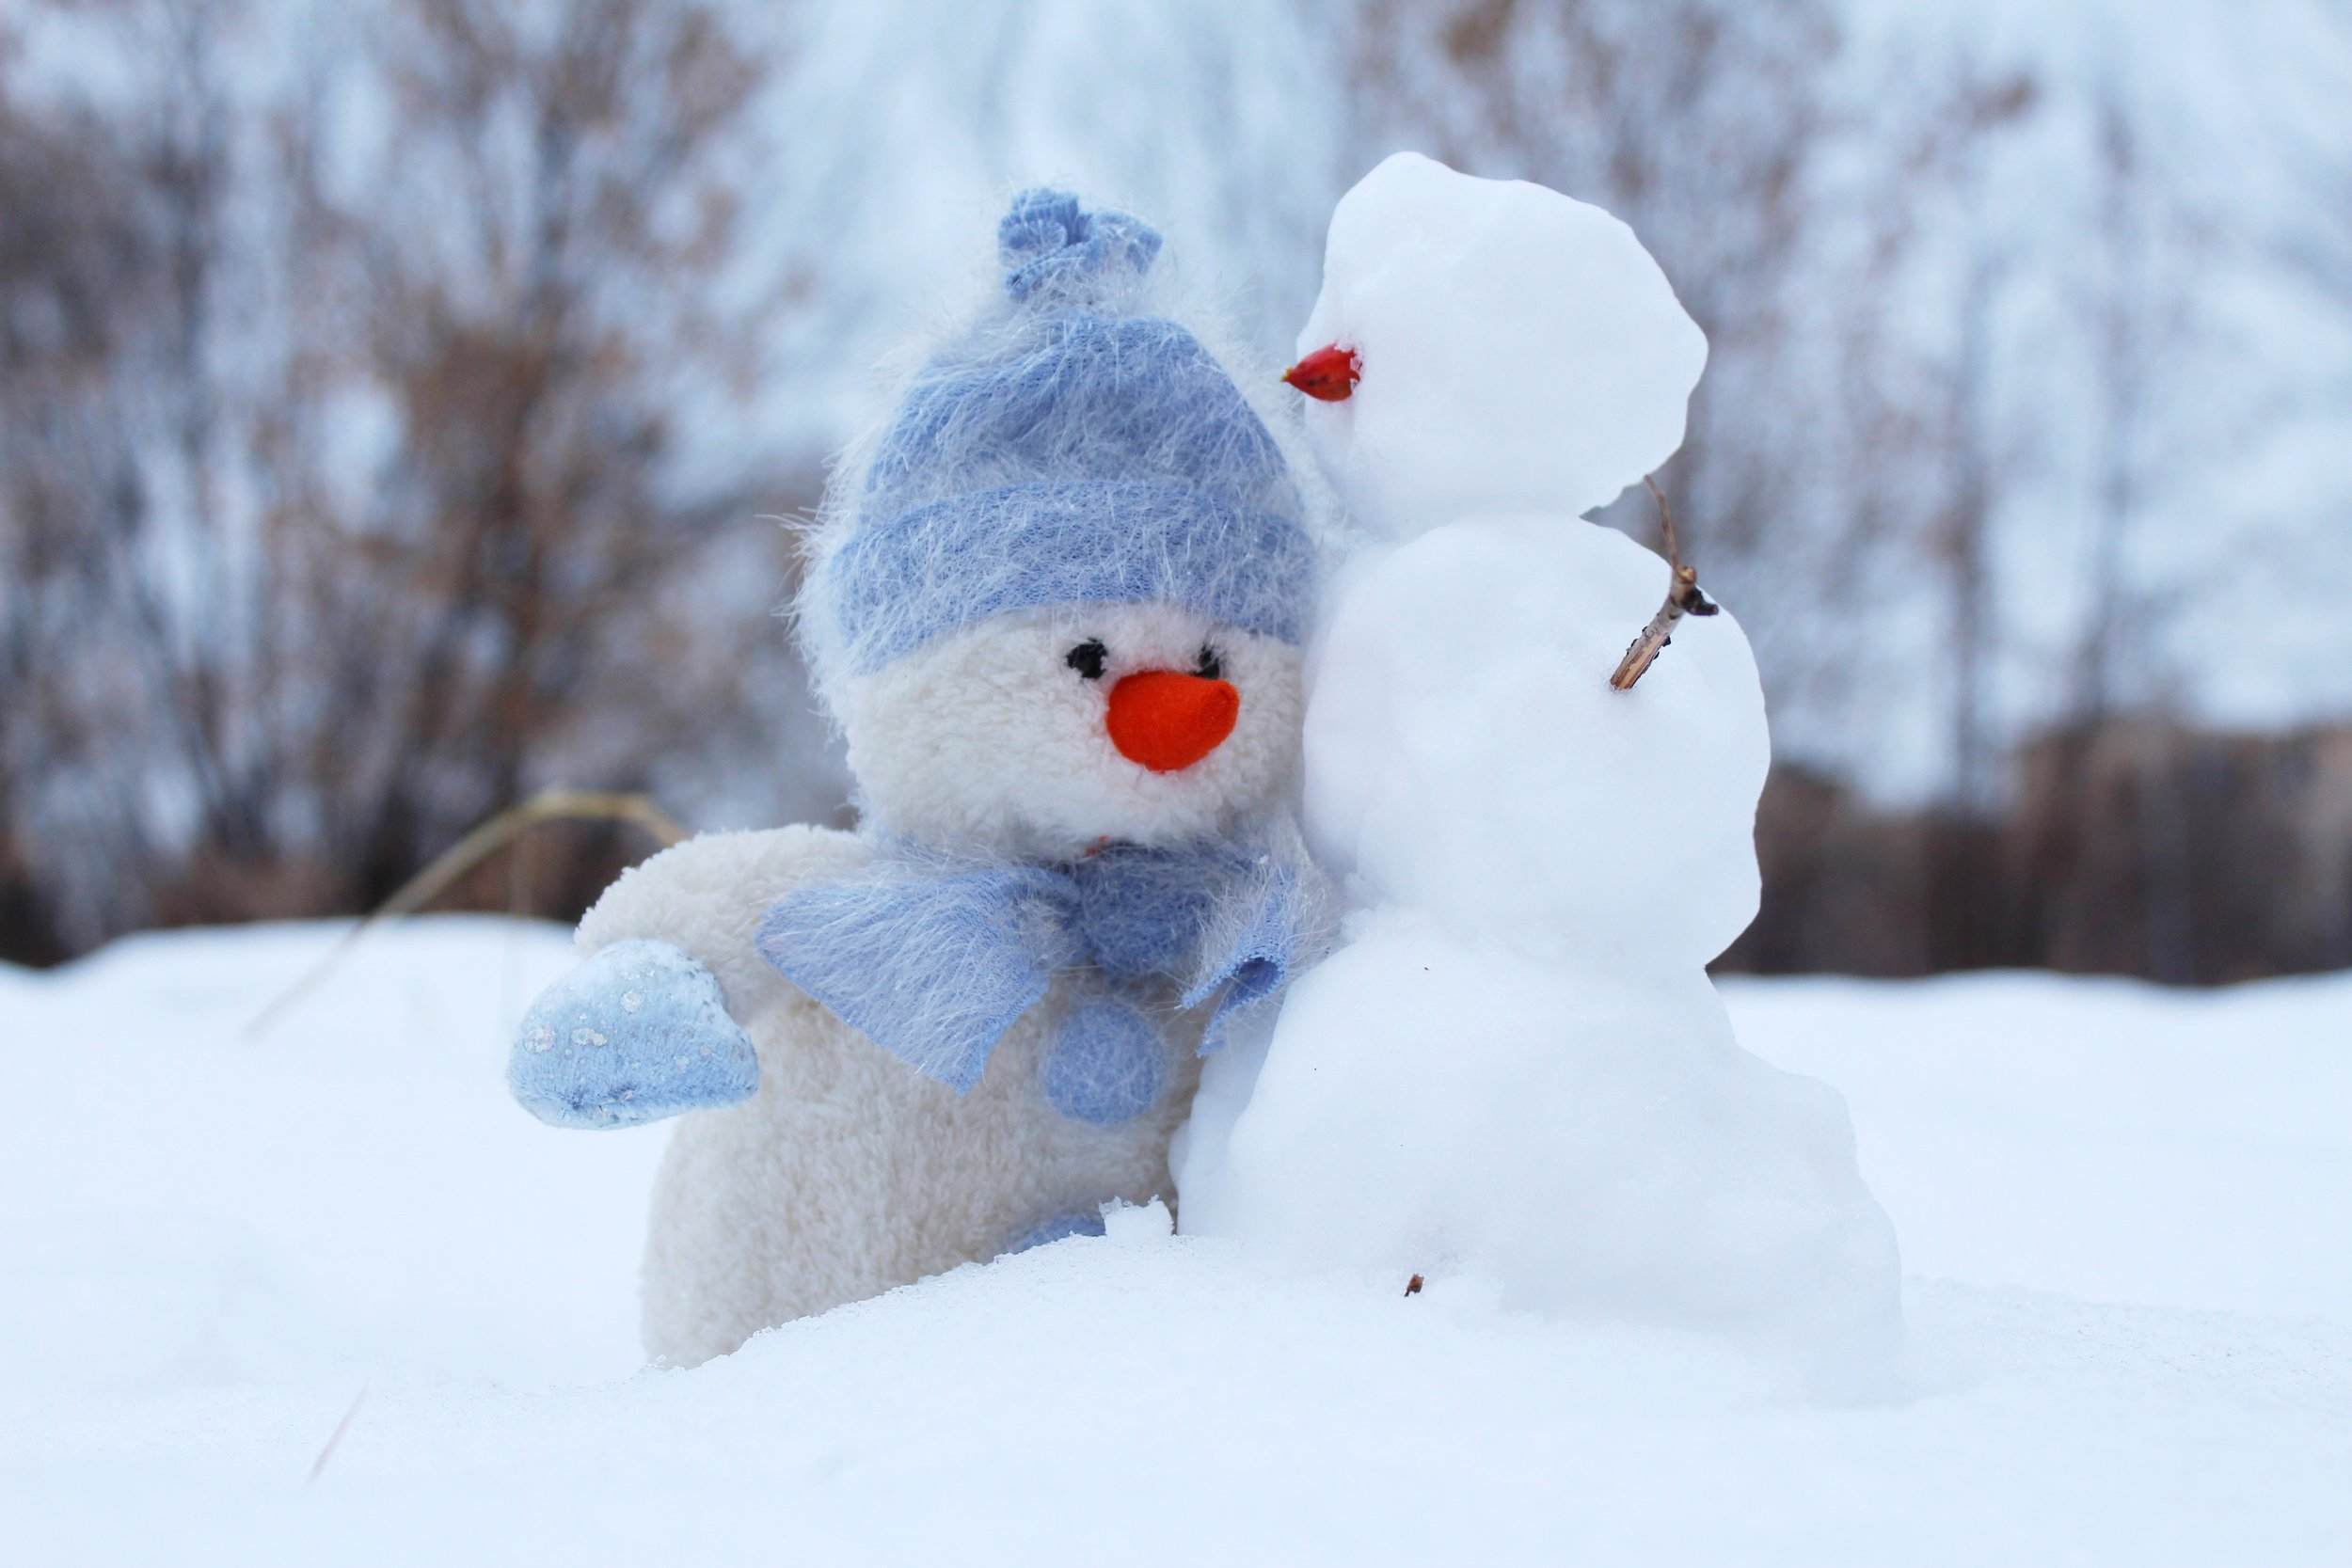 christmas-cold-friends-snowman-snow.jpg